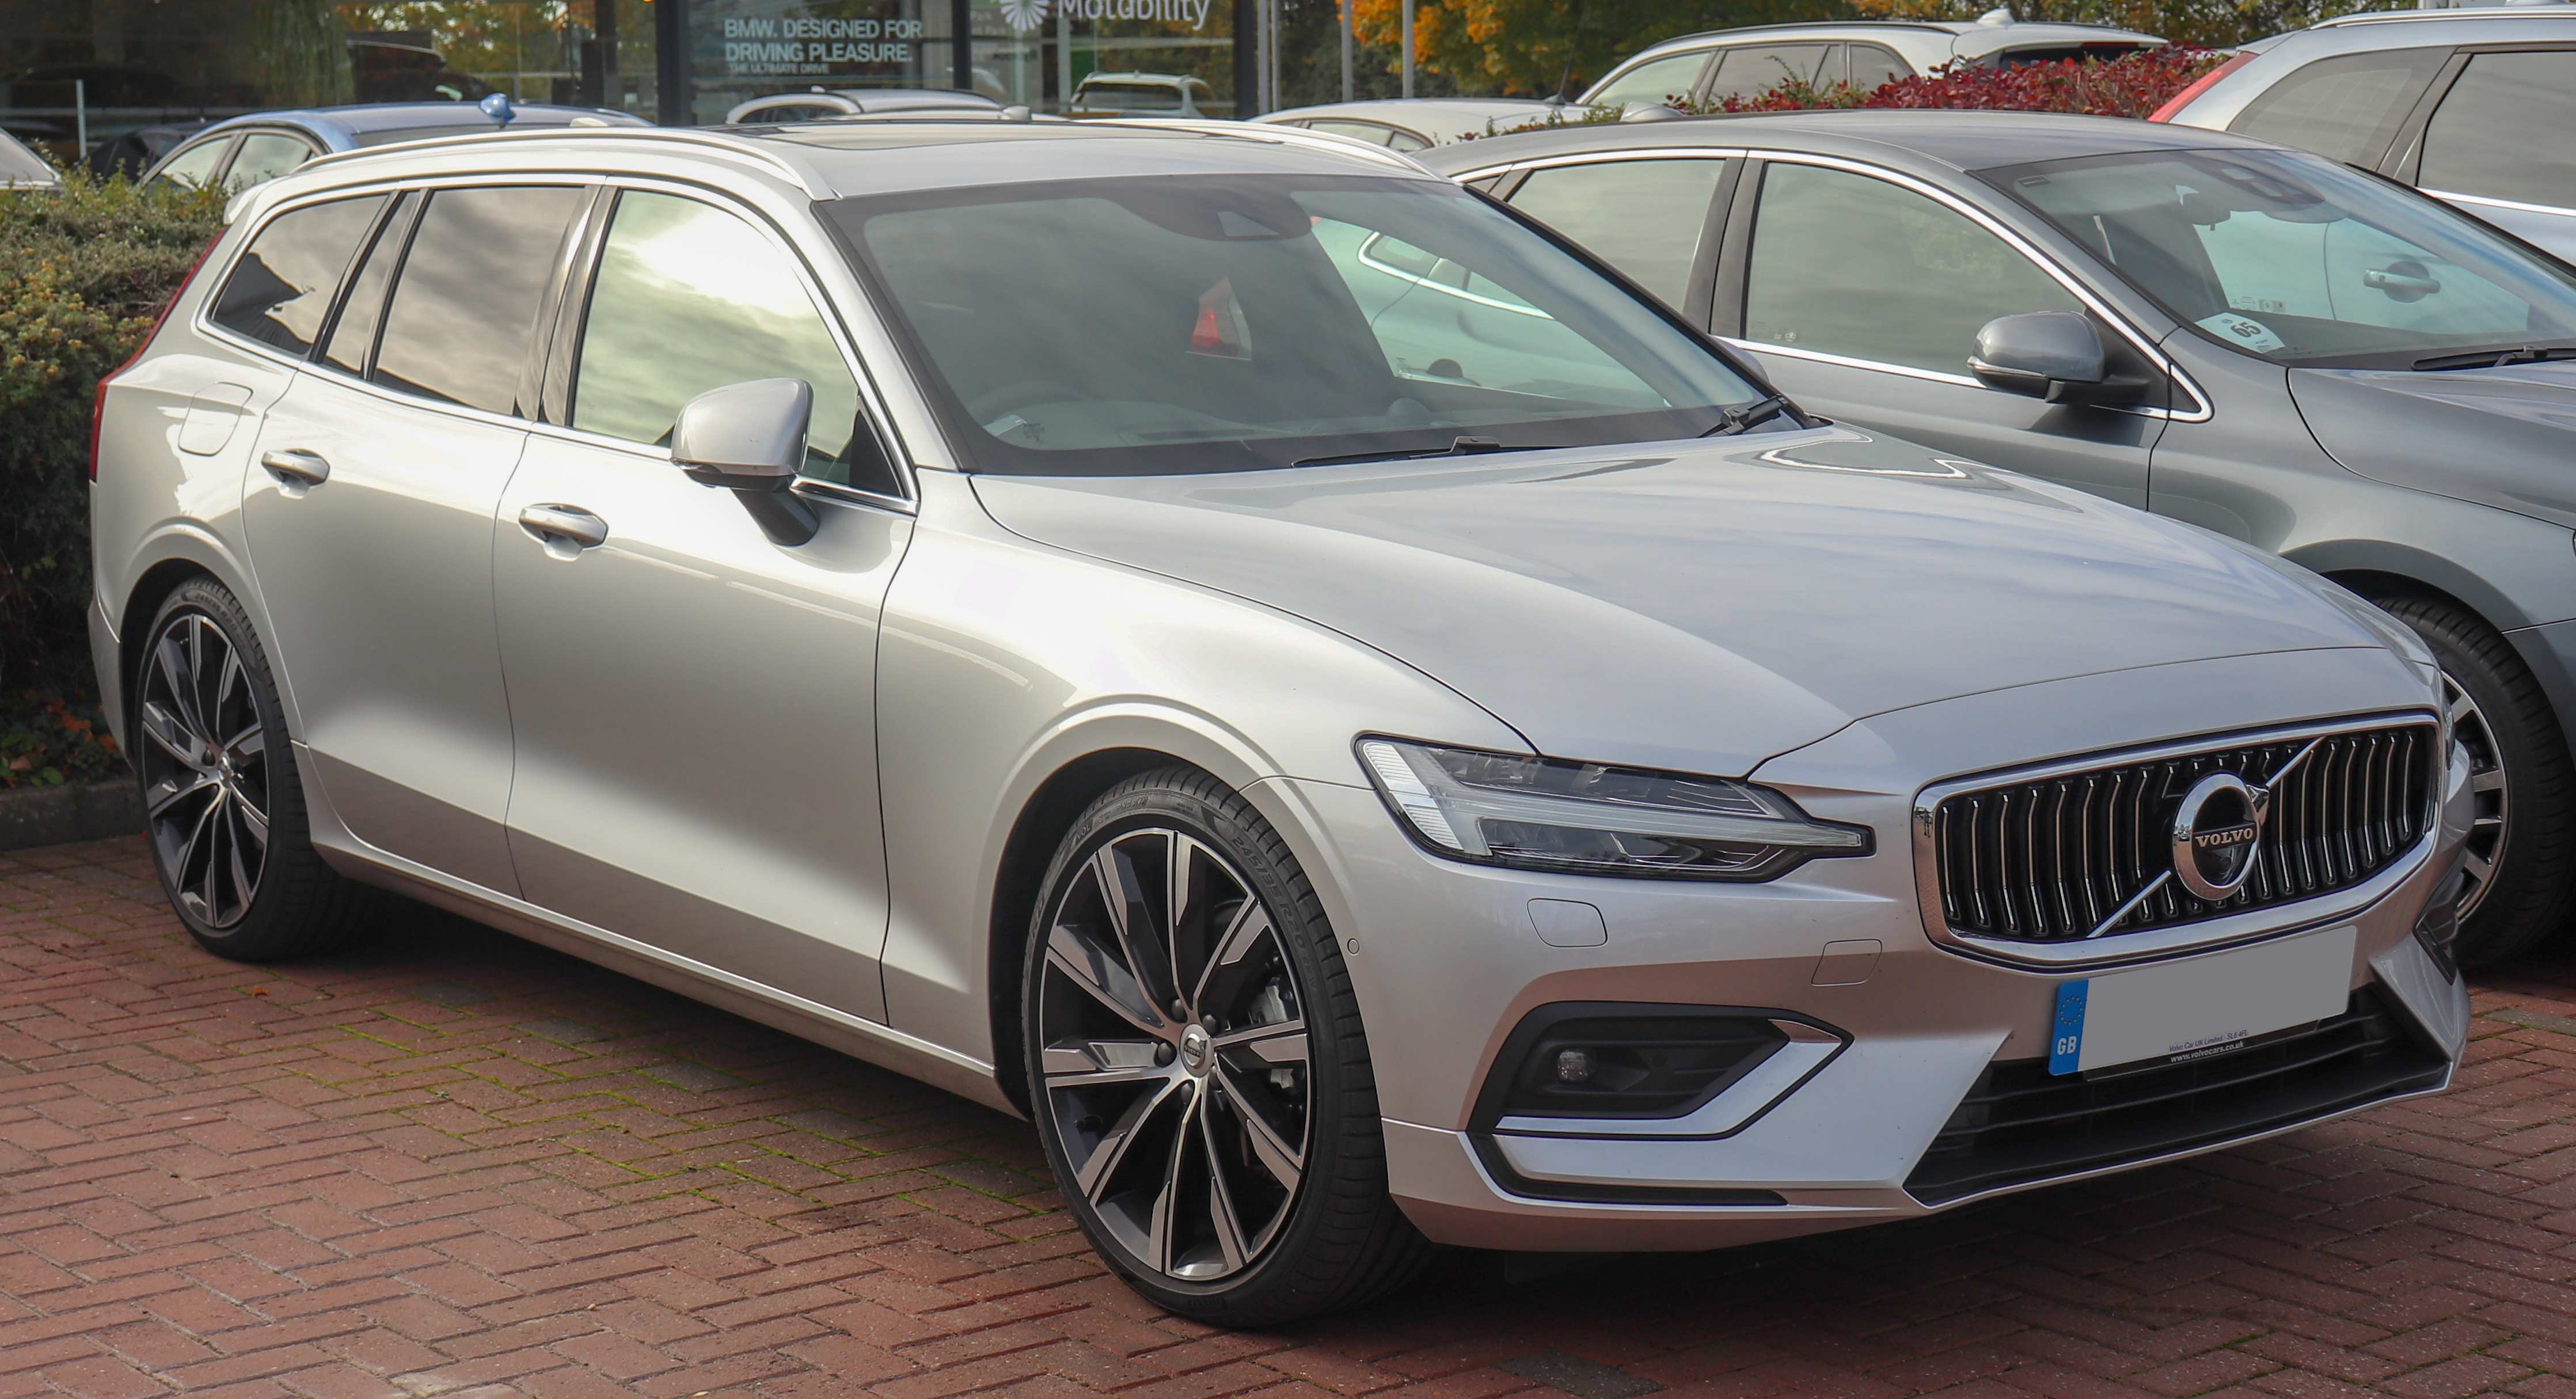 18 Gallery of Best Volvo Plug In 2019 Redesign Price And Review New Concept for Best Volvo Plug In 2019 Redesign Price And Review